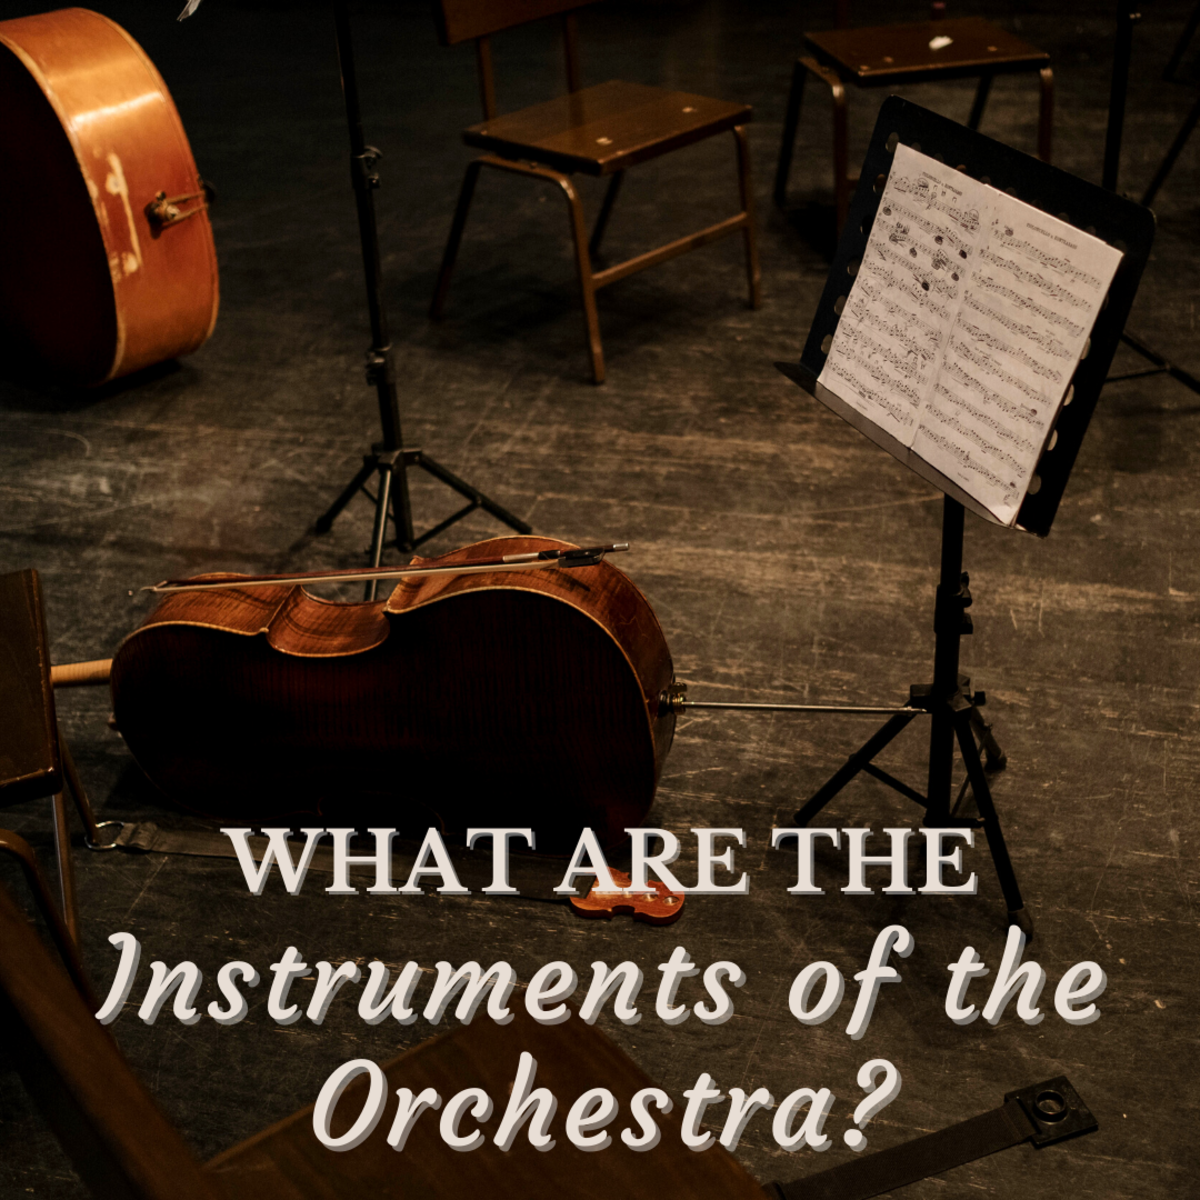 Strings, woodwinds, brass, and percussion—what are all the instruments that make up an orchestra?